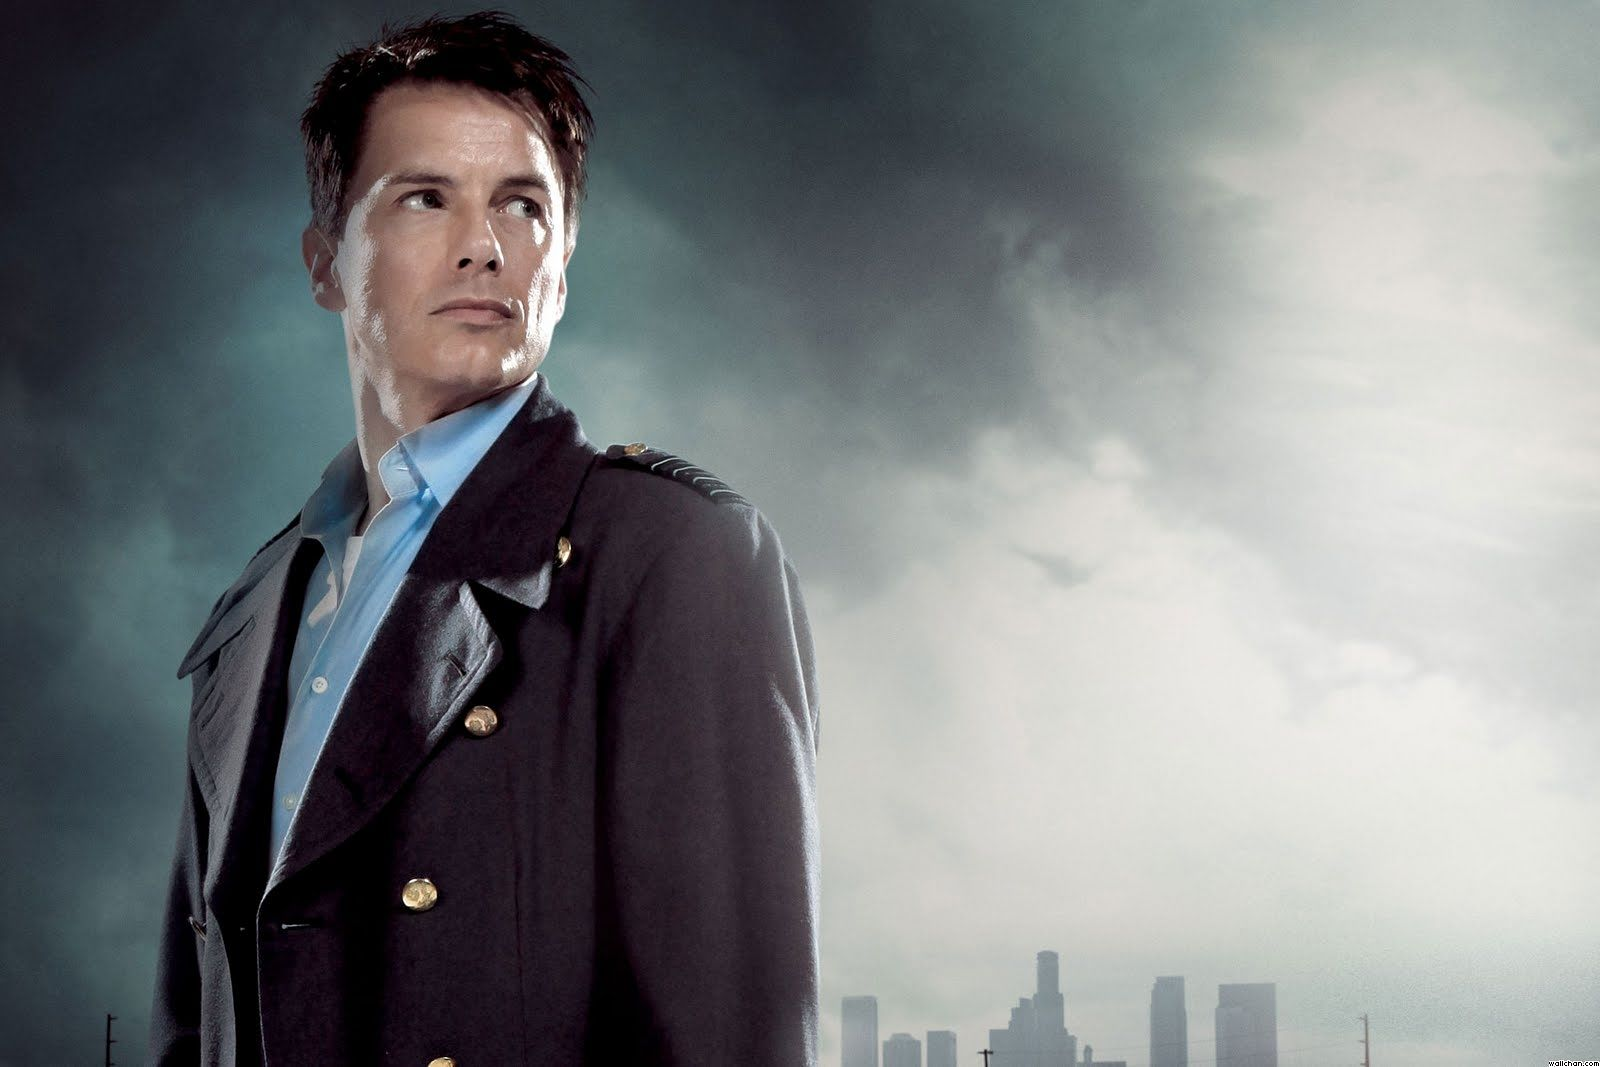 captain-jack-to-return-in-doctor-who-season-9-s09e06-drops-hints-captain-jack-in-dr-who-684100